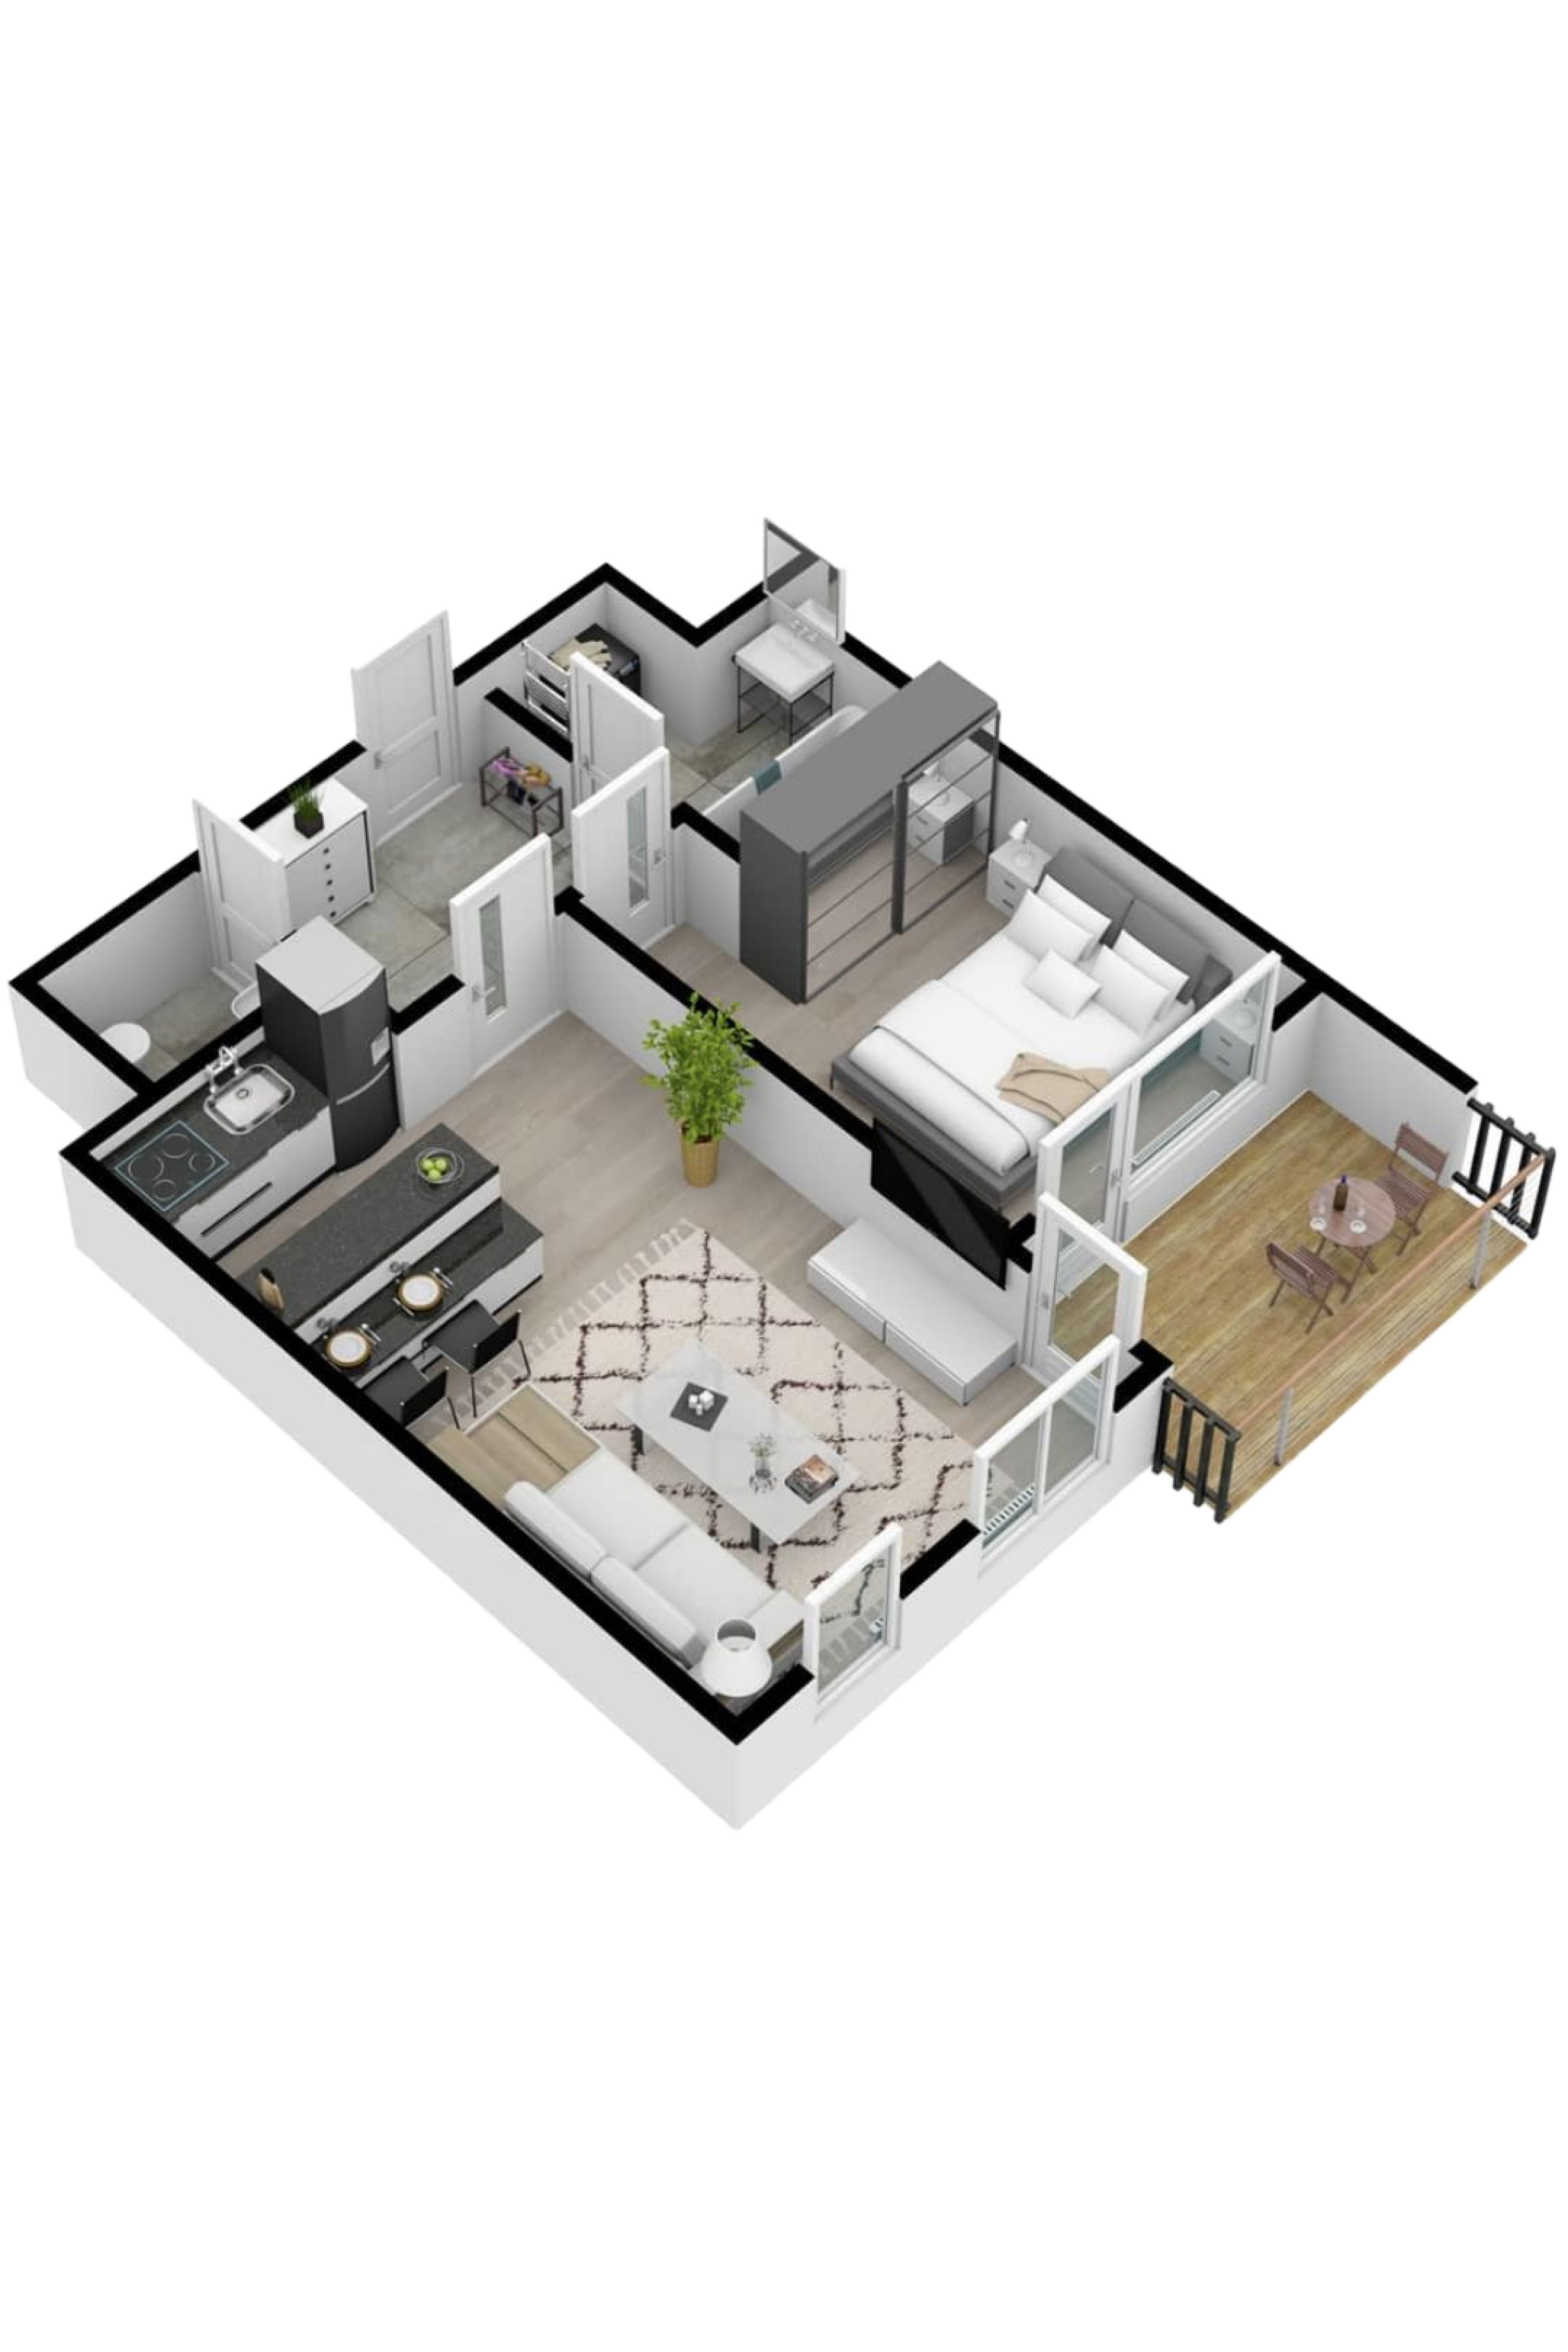 Tiny House Made On Floorplanner Com In 2020 Home Design Software Tiny House Design Home Design Software Free